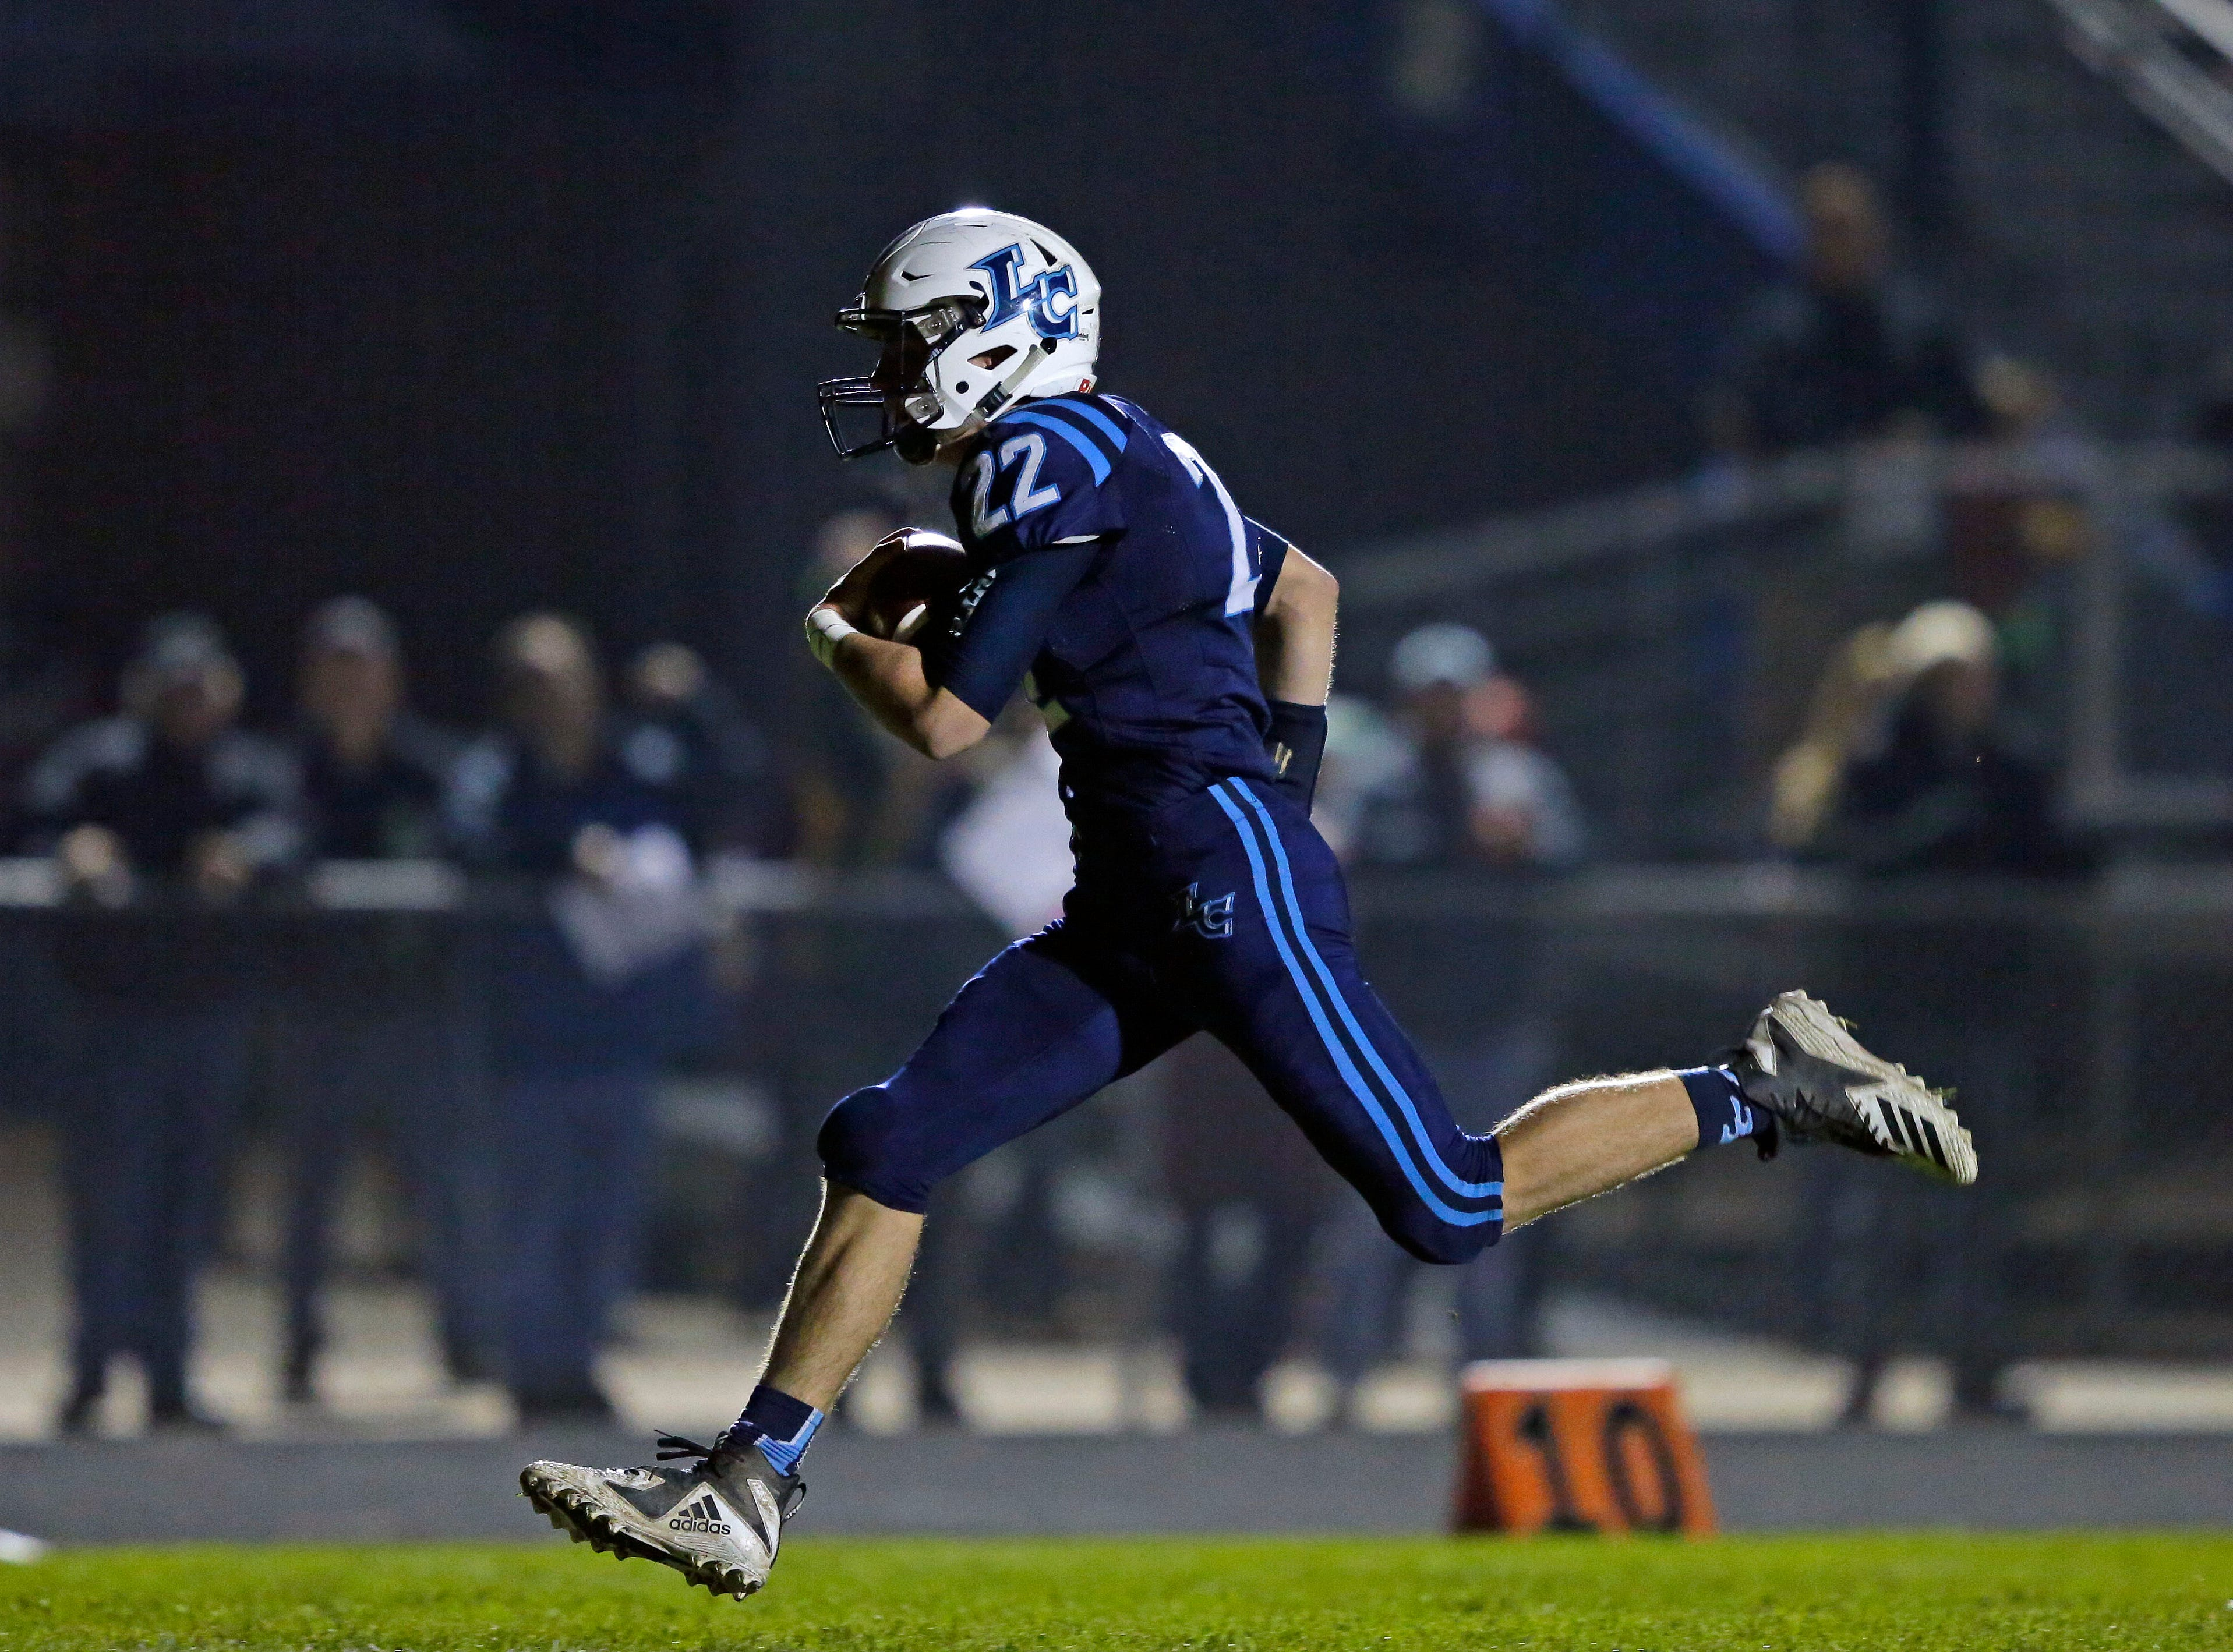 Bryce Schumacher of Little Chute rushes for a touchdown against Chilton in a WIAA Division 4 second round football playoff game Friday, October 26, 2018, at Little Chute High School in Little Chute, Wis.Ron Page/USA TODAY NETWORK-Wisconsin